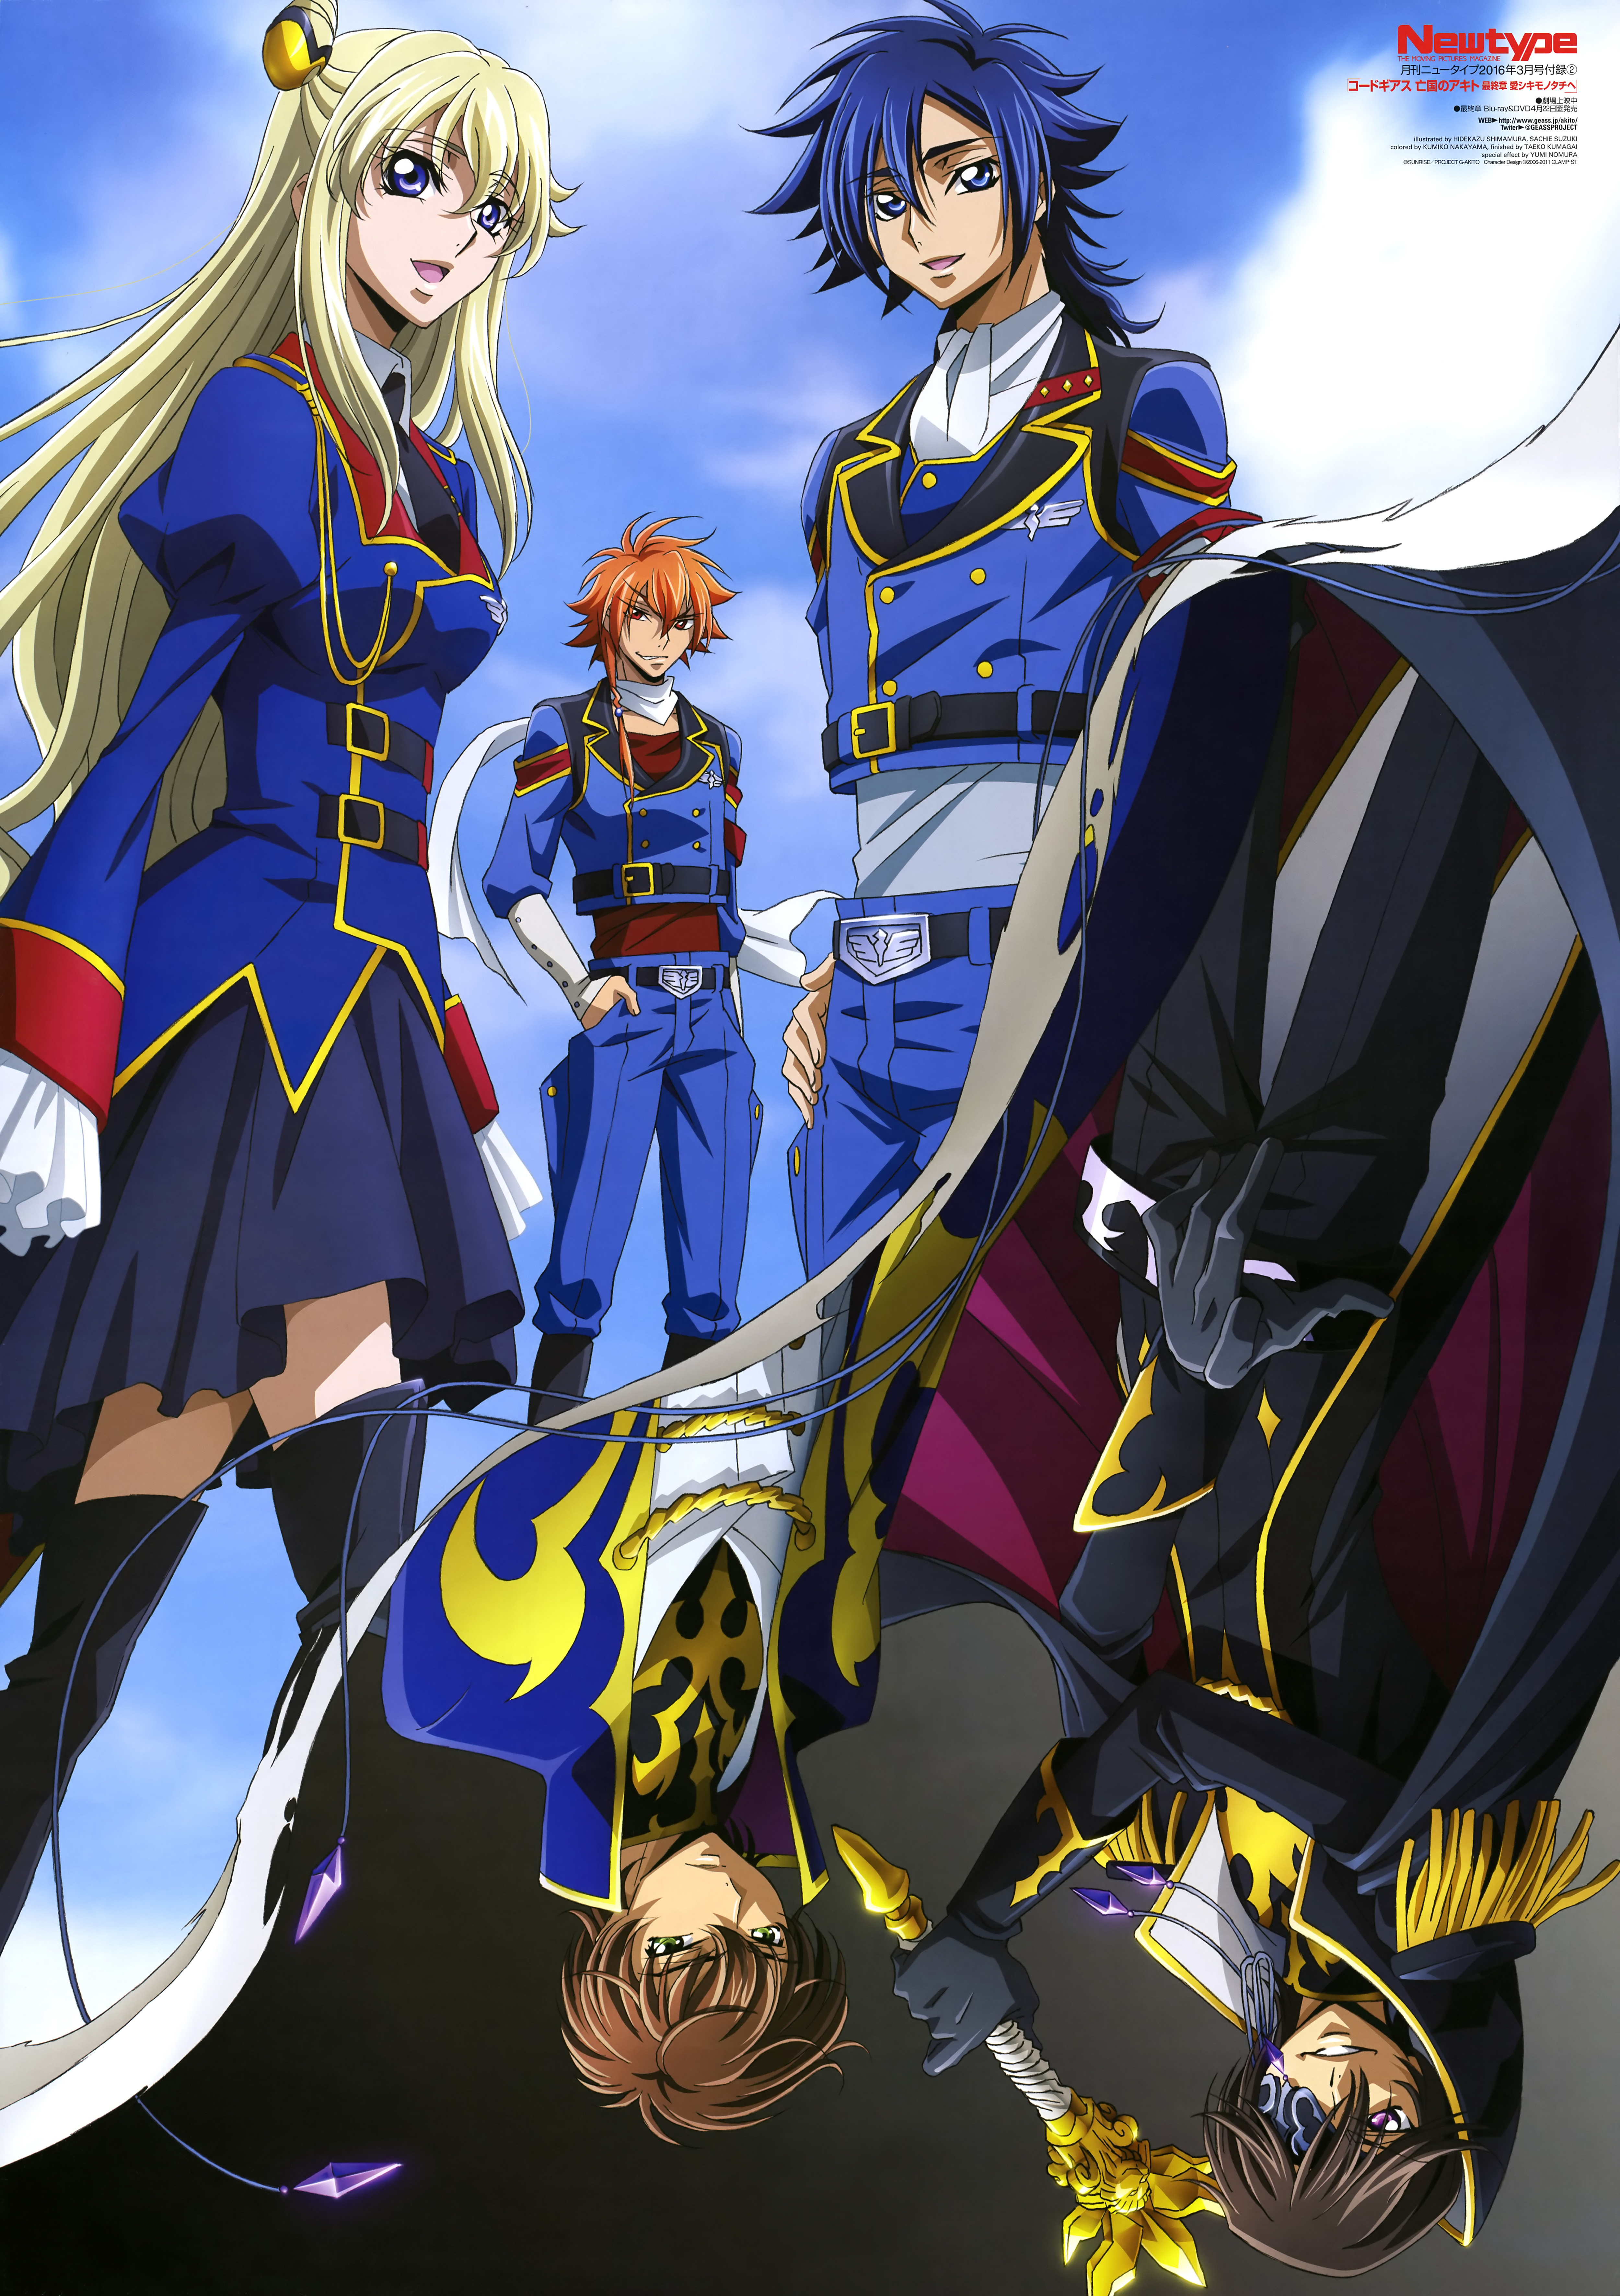 Code Geass Akito the Exiled 4 Poster Revealed